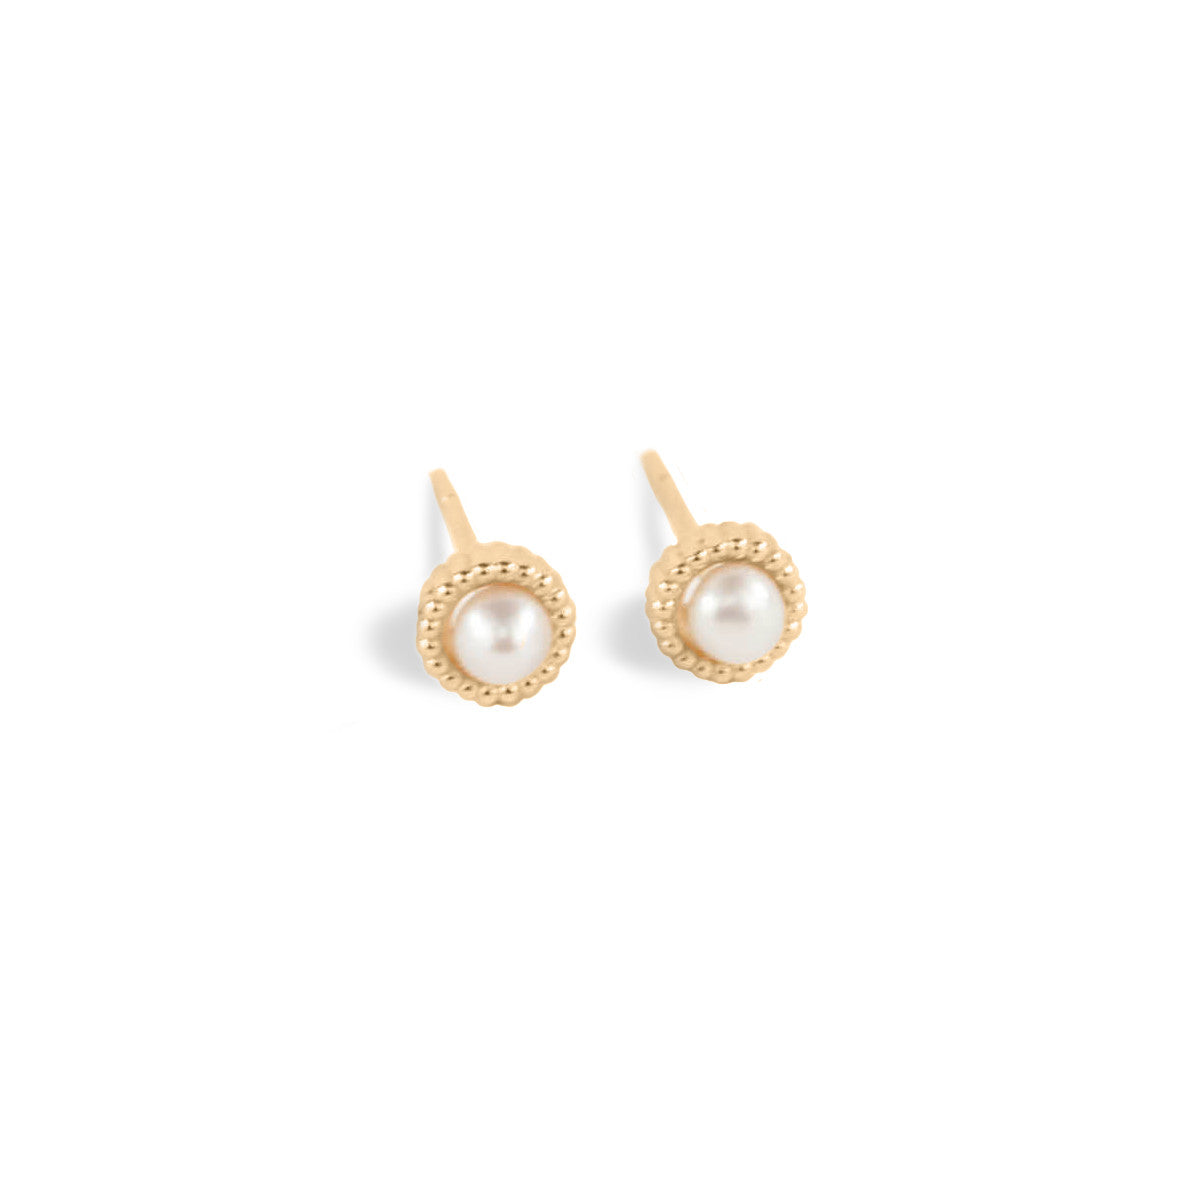 de designer smiley single pearl earring stagni emoji earrings freshwater diamonds nektar gold back by jewelry copy cultured black with of post mm view